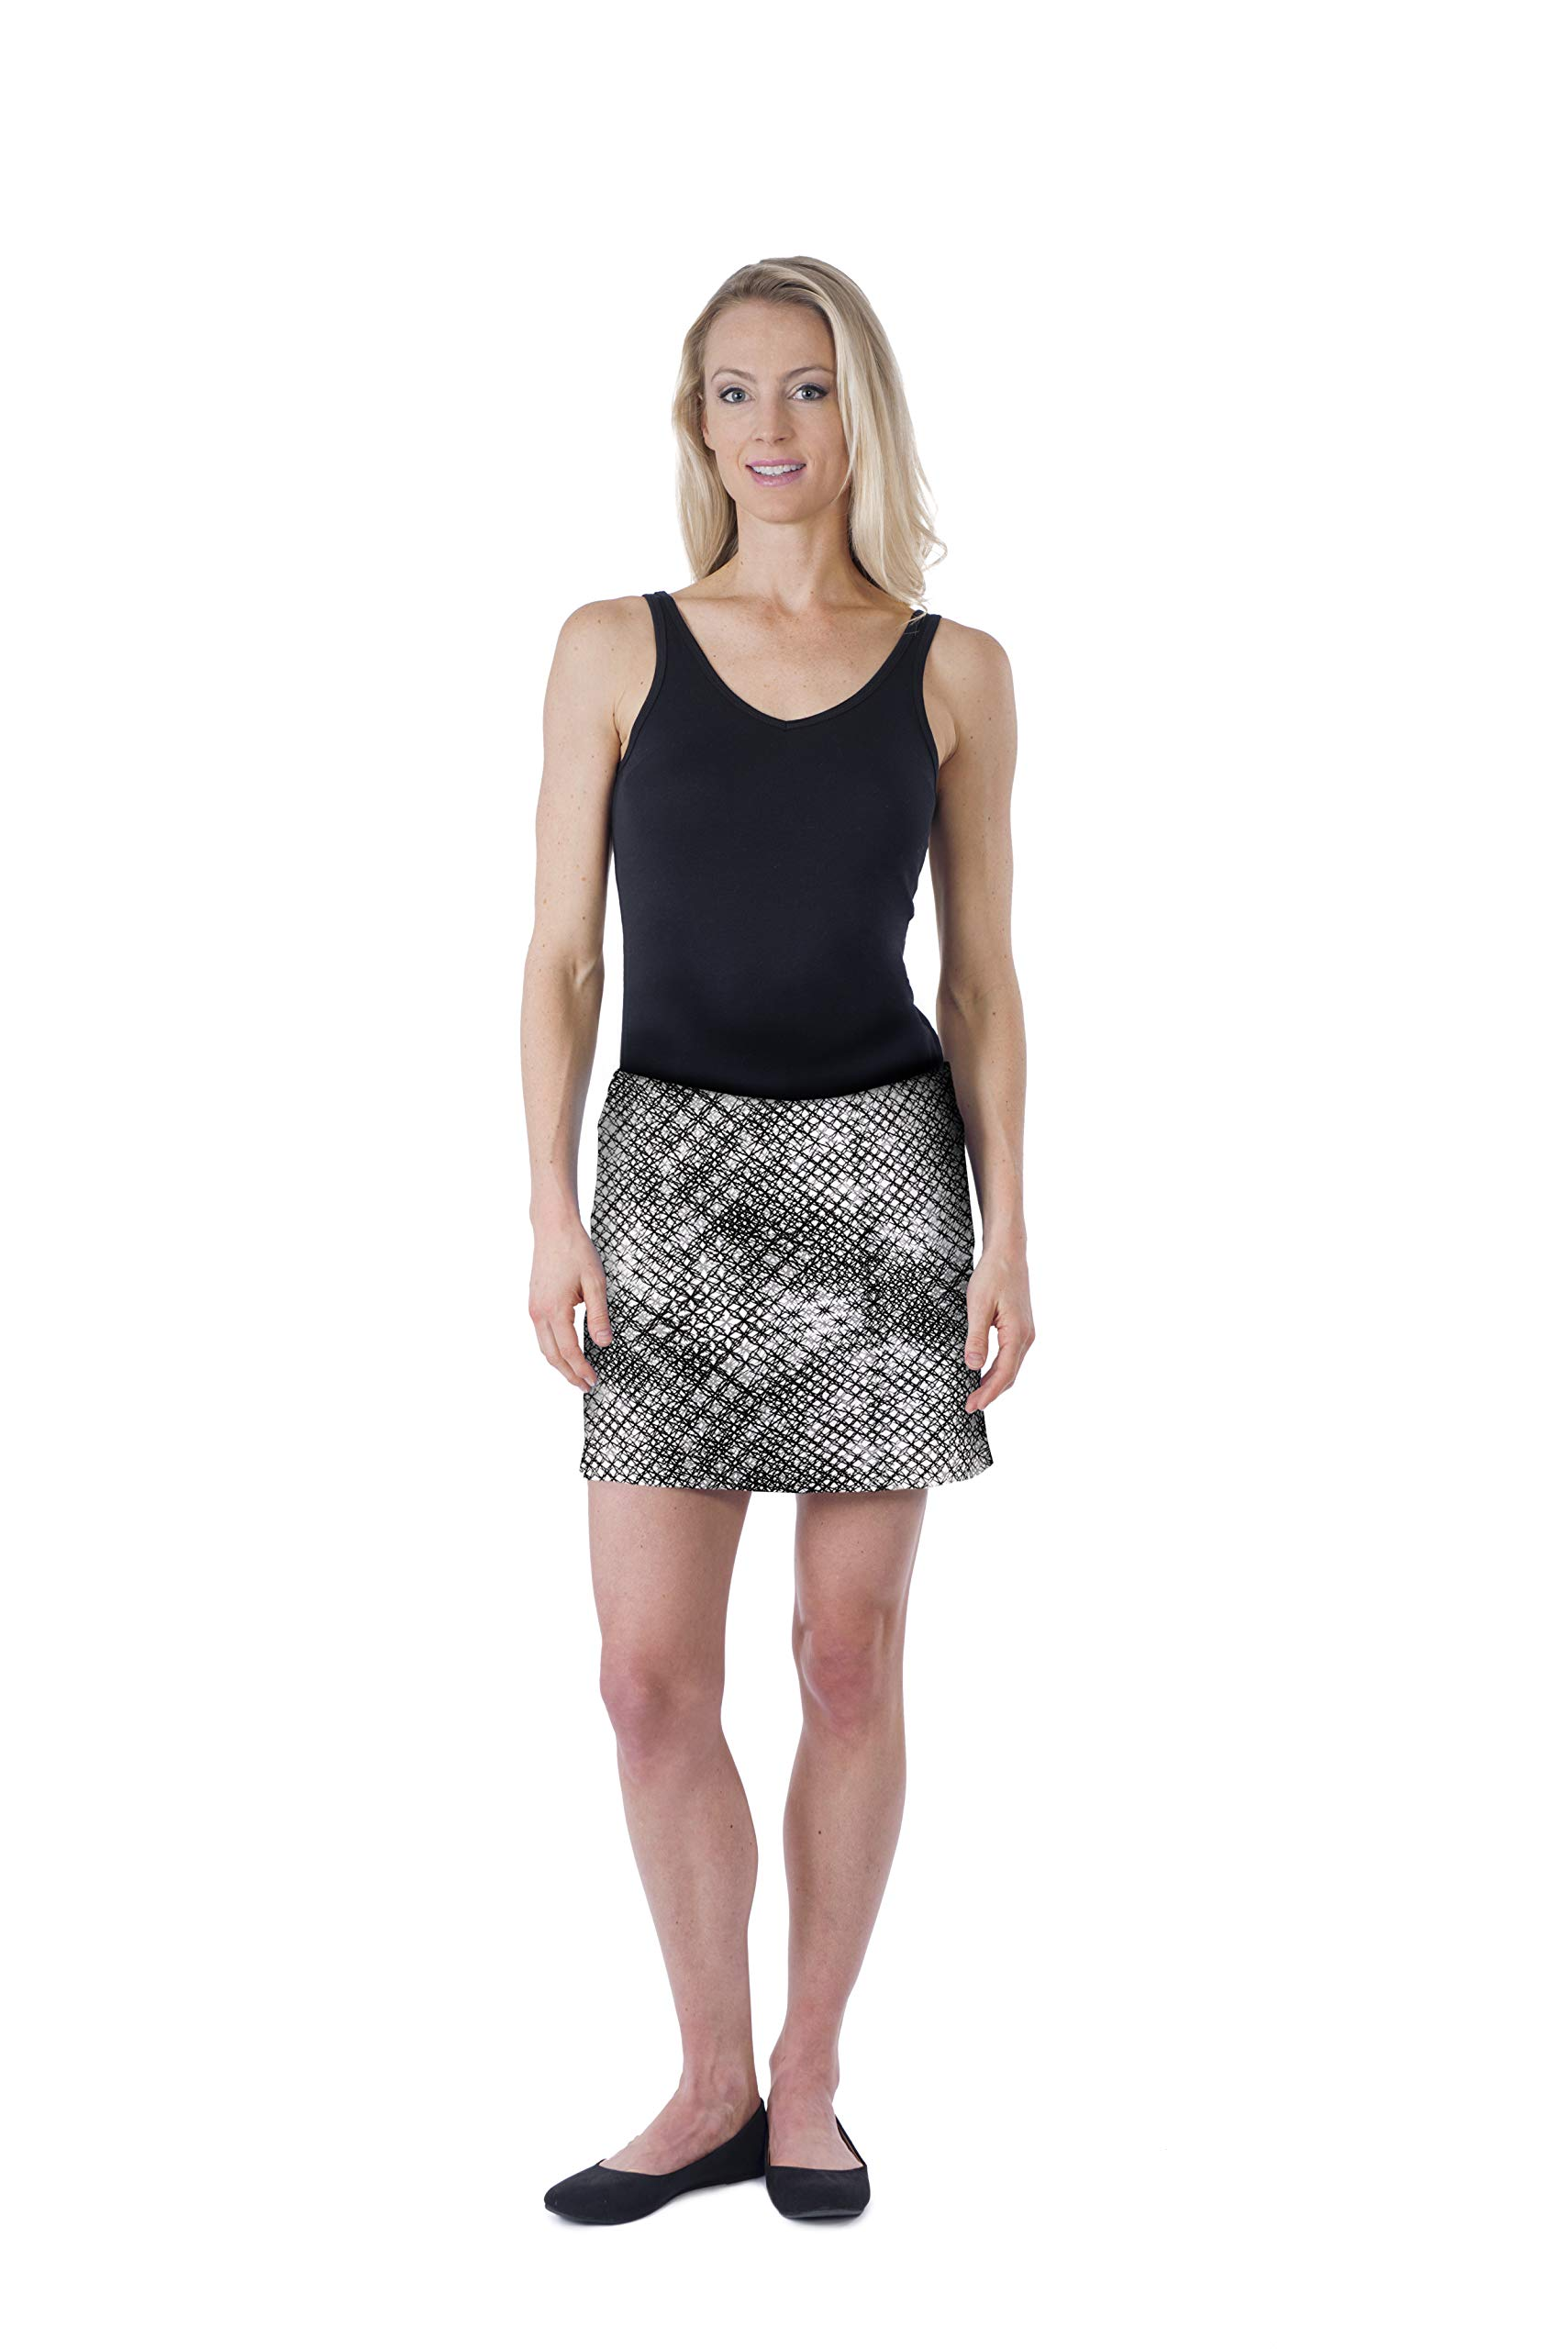 Colorado Clothing Women's Everyday Skort (Nebula, X-Small) by Colorado Clothing